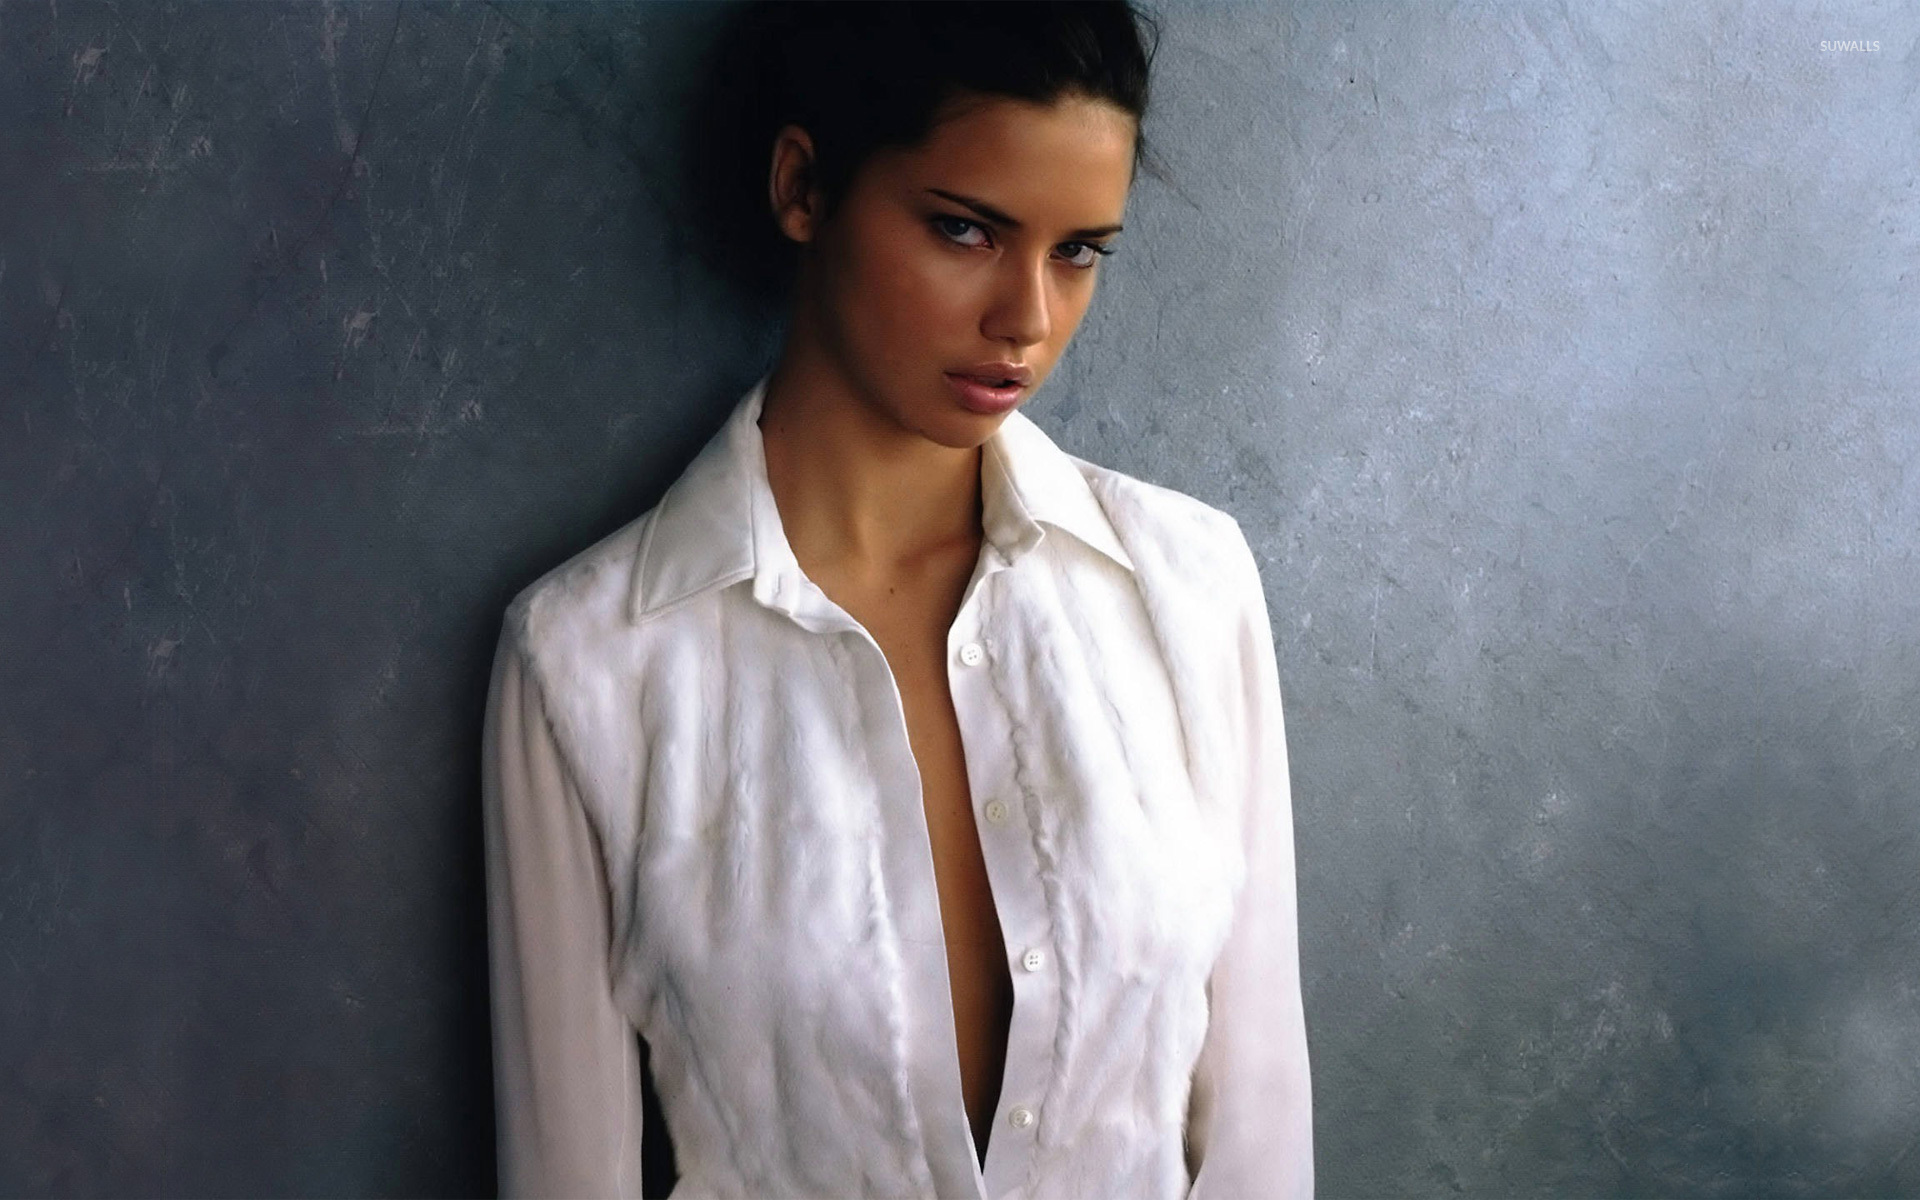 Adriana lima 23 wallpaper girl wallpapers 4009 adriana lima 23 wallpaper voltagebd Images